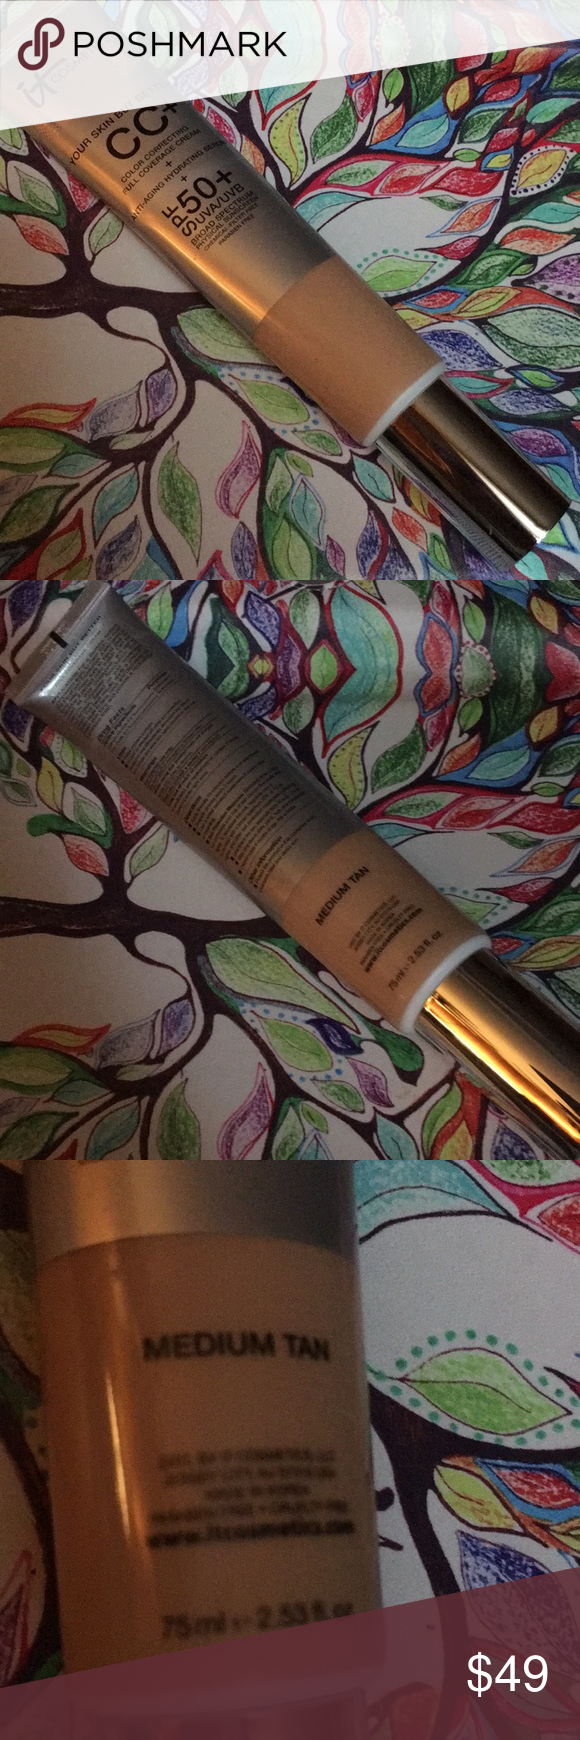 """SALE ️NEW IT Cosmetics """"Perfect Finish"""" MED TAN in 2020"""